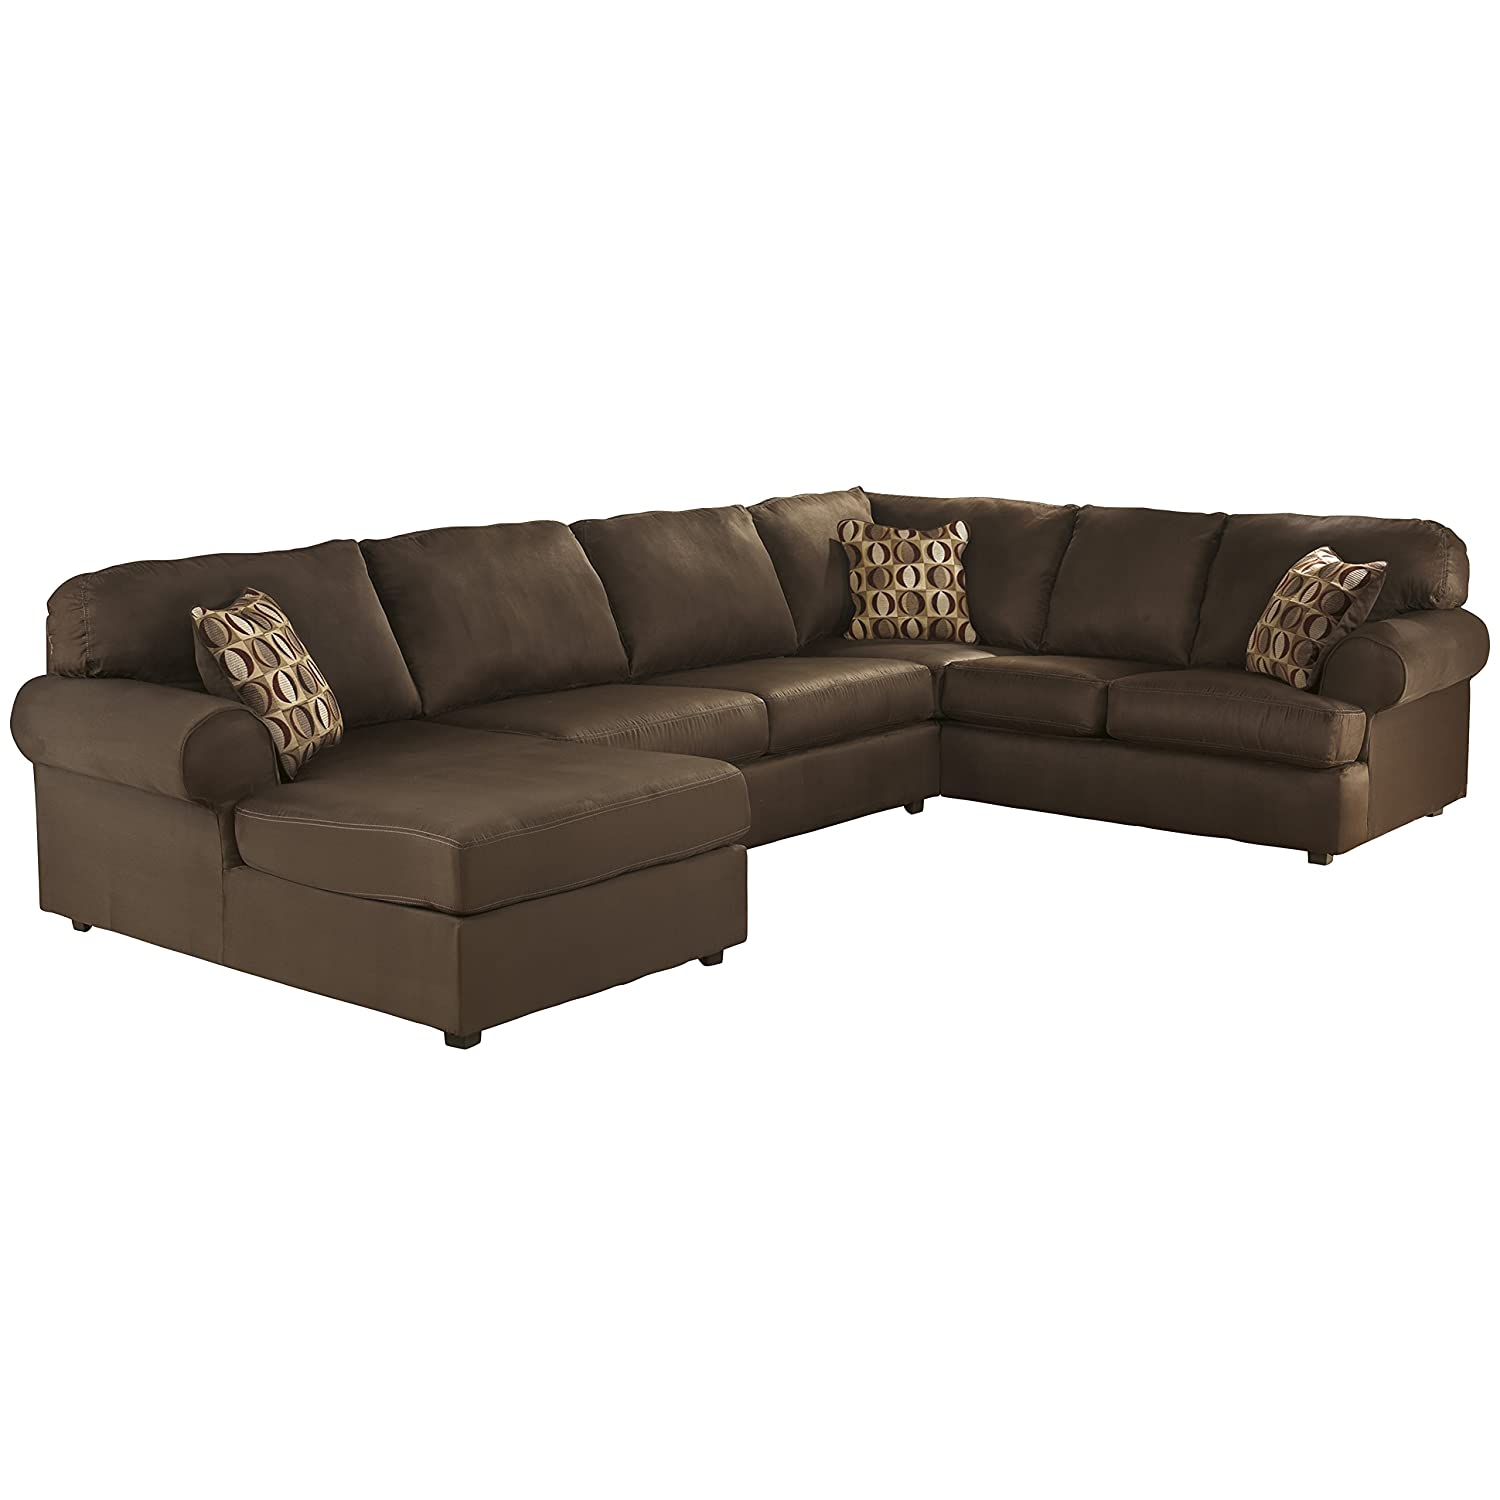 Jessa place 3 piece sectional - Amazon Com Signature Design By Ashley Cowan Sectional In Cafe Fabric Kitchen Dining